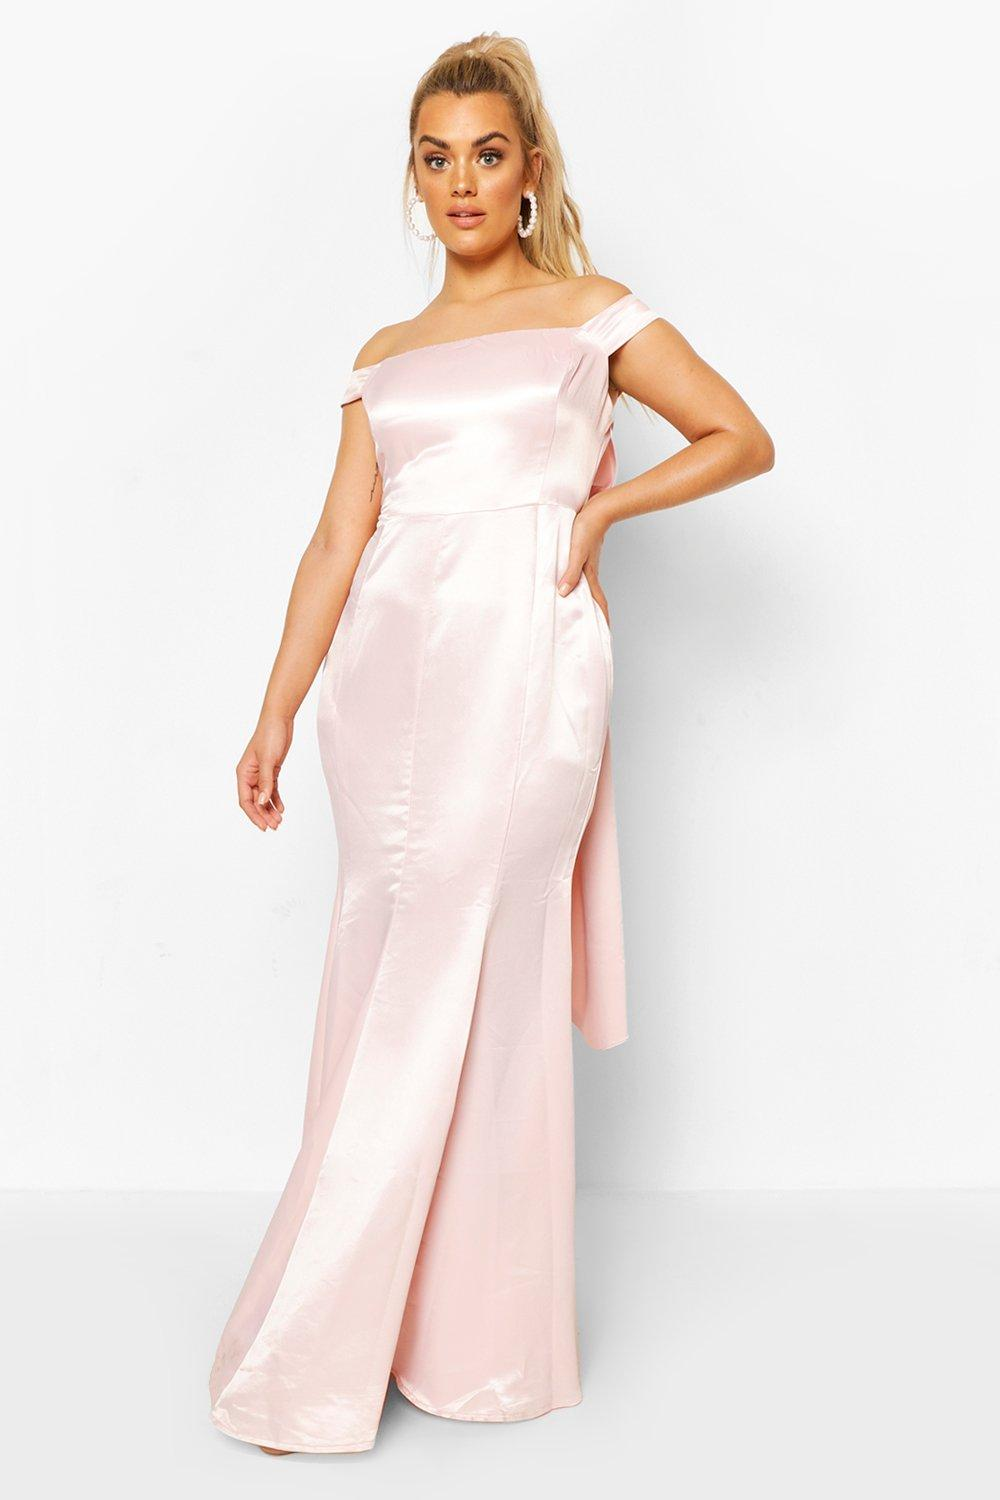 80s Dresses | Casual to Party Dresses Womens Plus Occasion Satin Bow Back Maxi Dress - Pink - 16 $28.00 AT vintagedancer.com